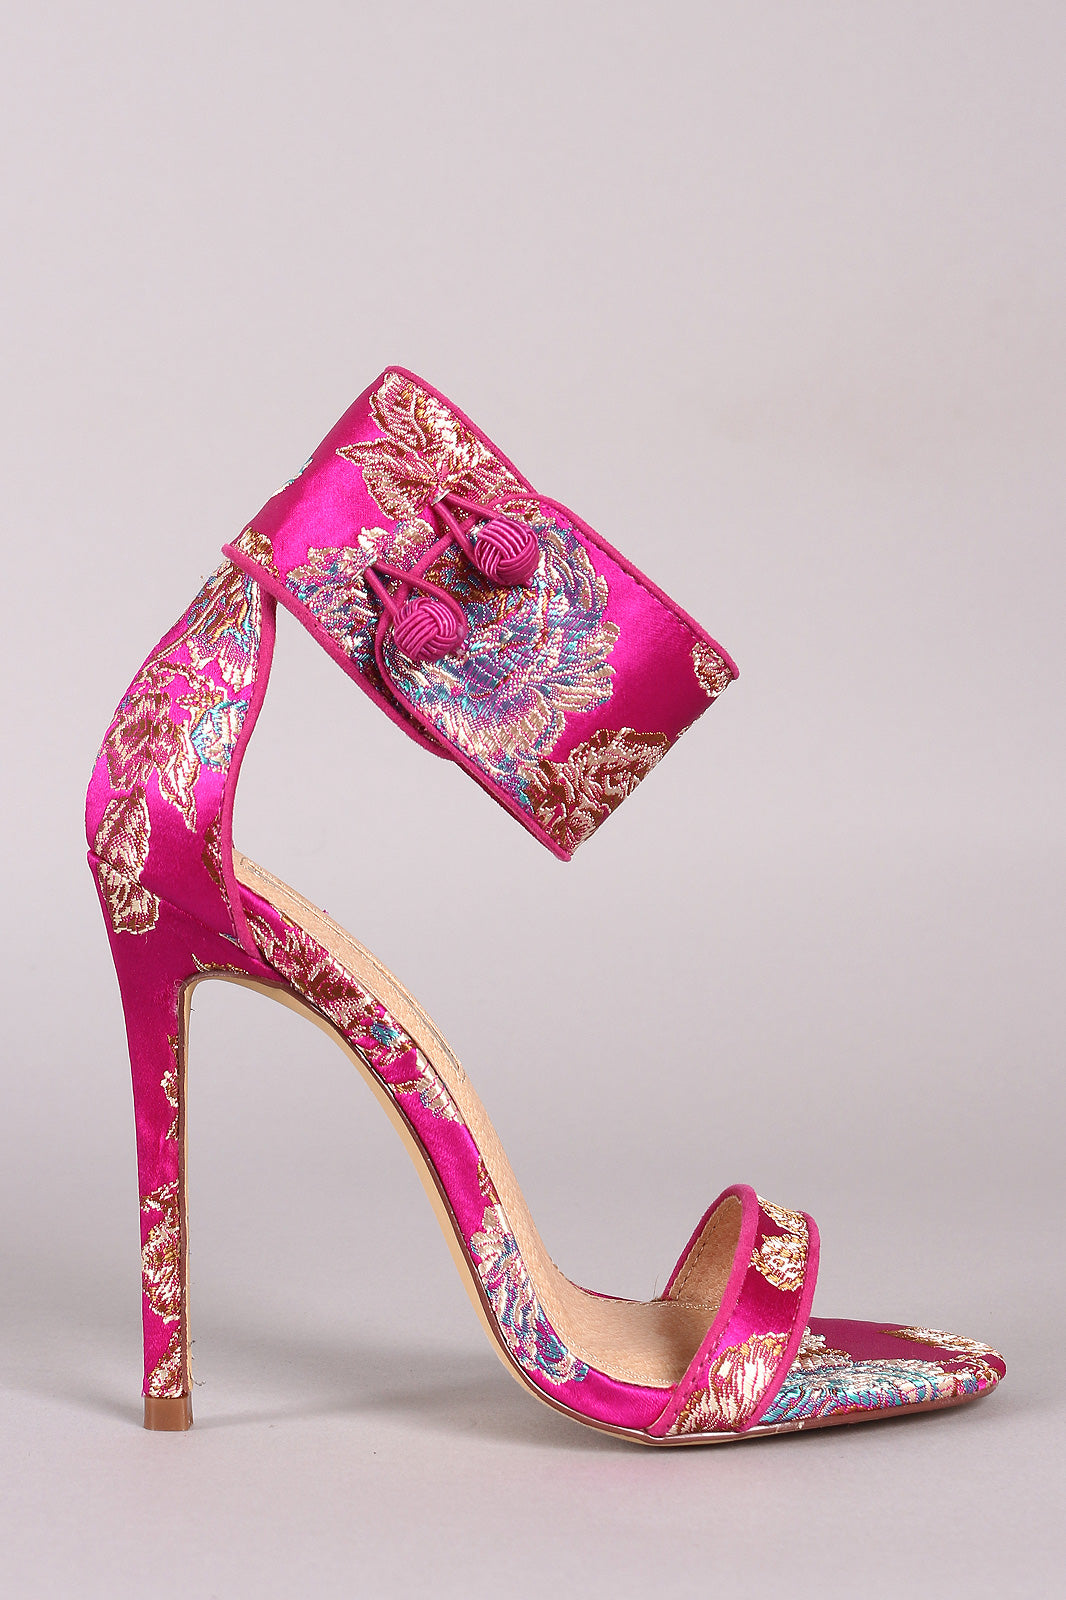 Liliana Floral Satin Ankle Cuff Single Sole Stiletto Heels